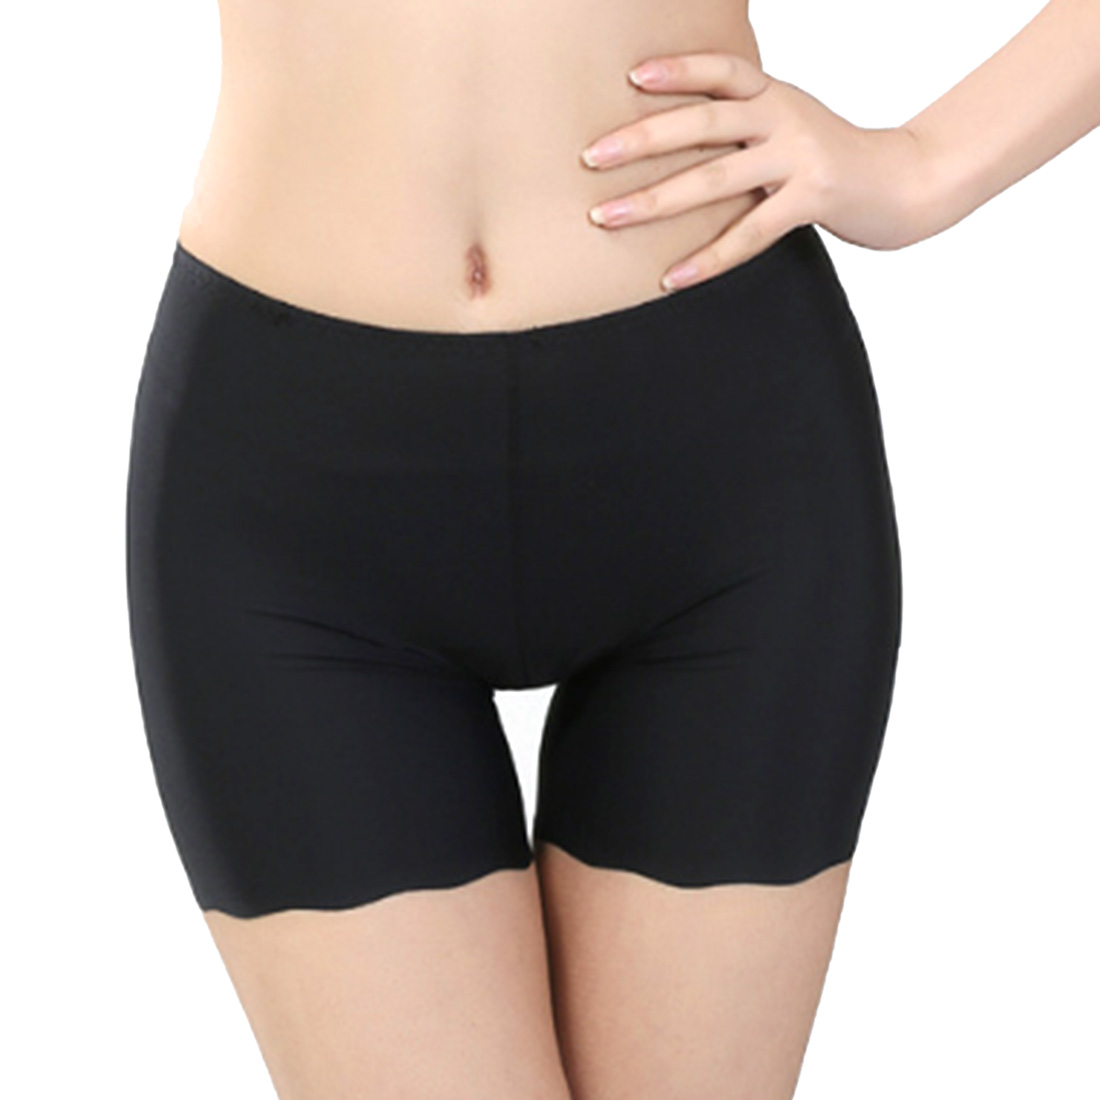 Women Lady Pants Short Skirt Under Short Leggings Briefs Seamless Pants Elastic Leggings Jammers